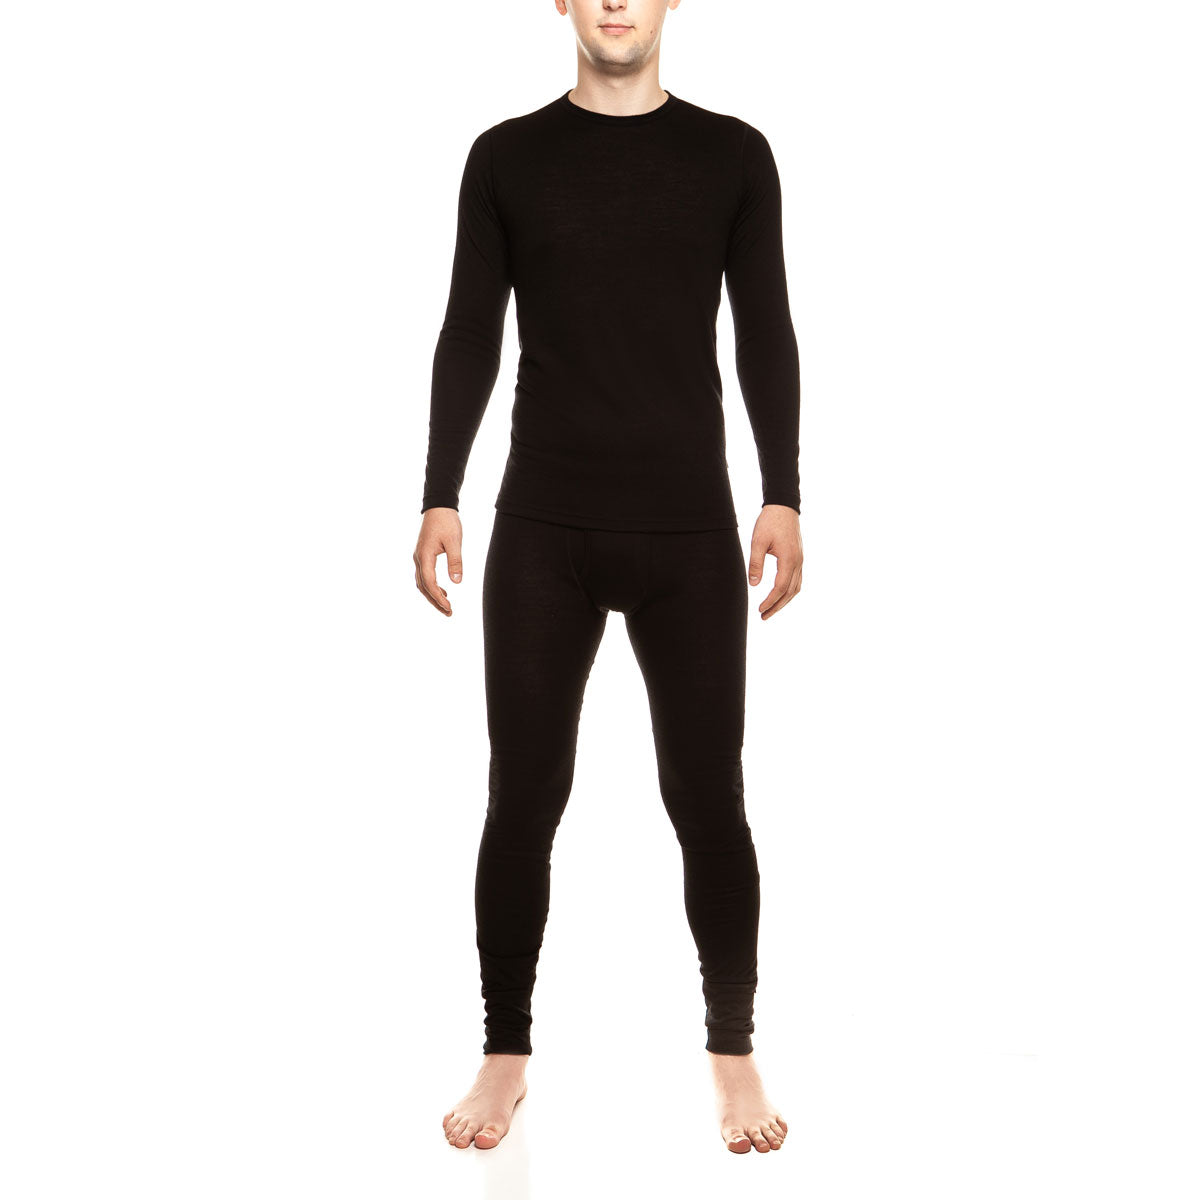 menique Men's Merino 160 Long Sleeve Set Black Color